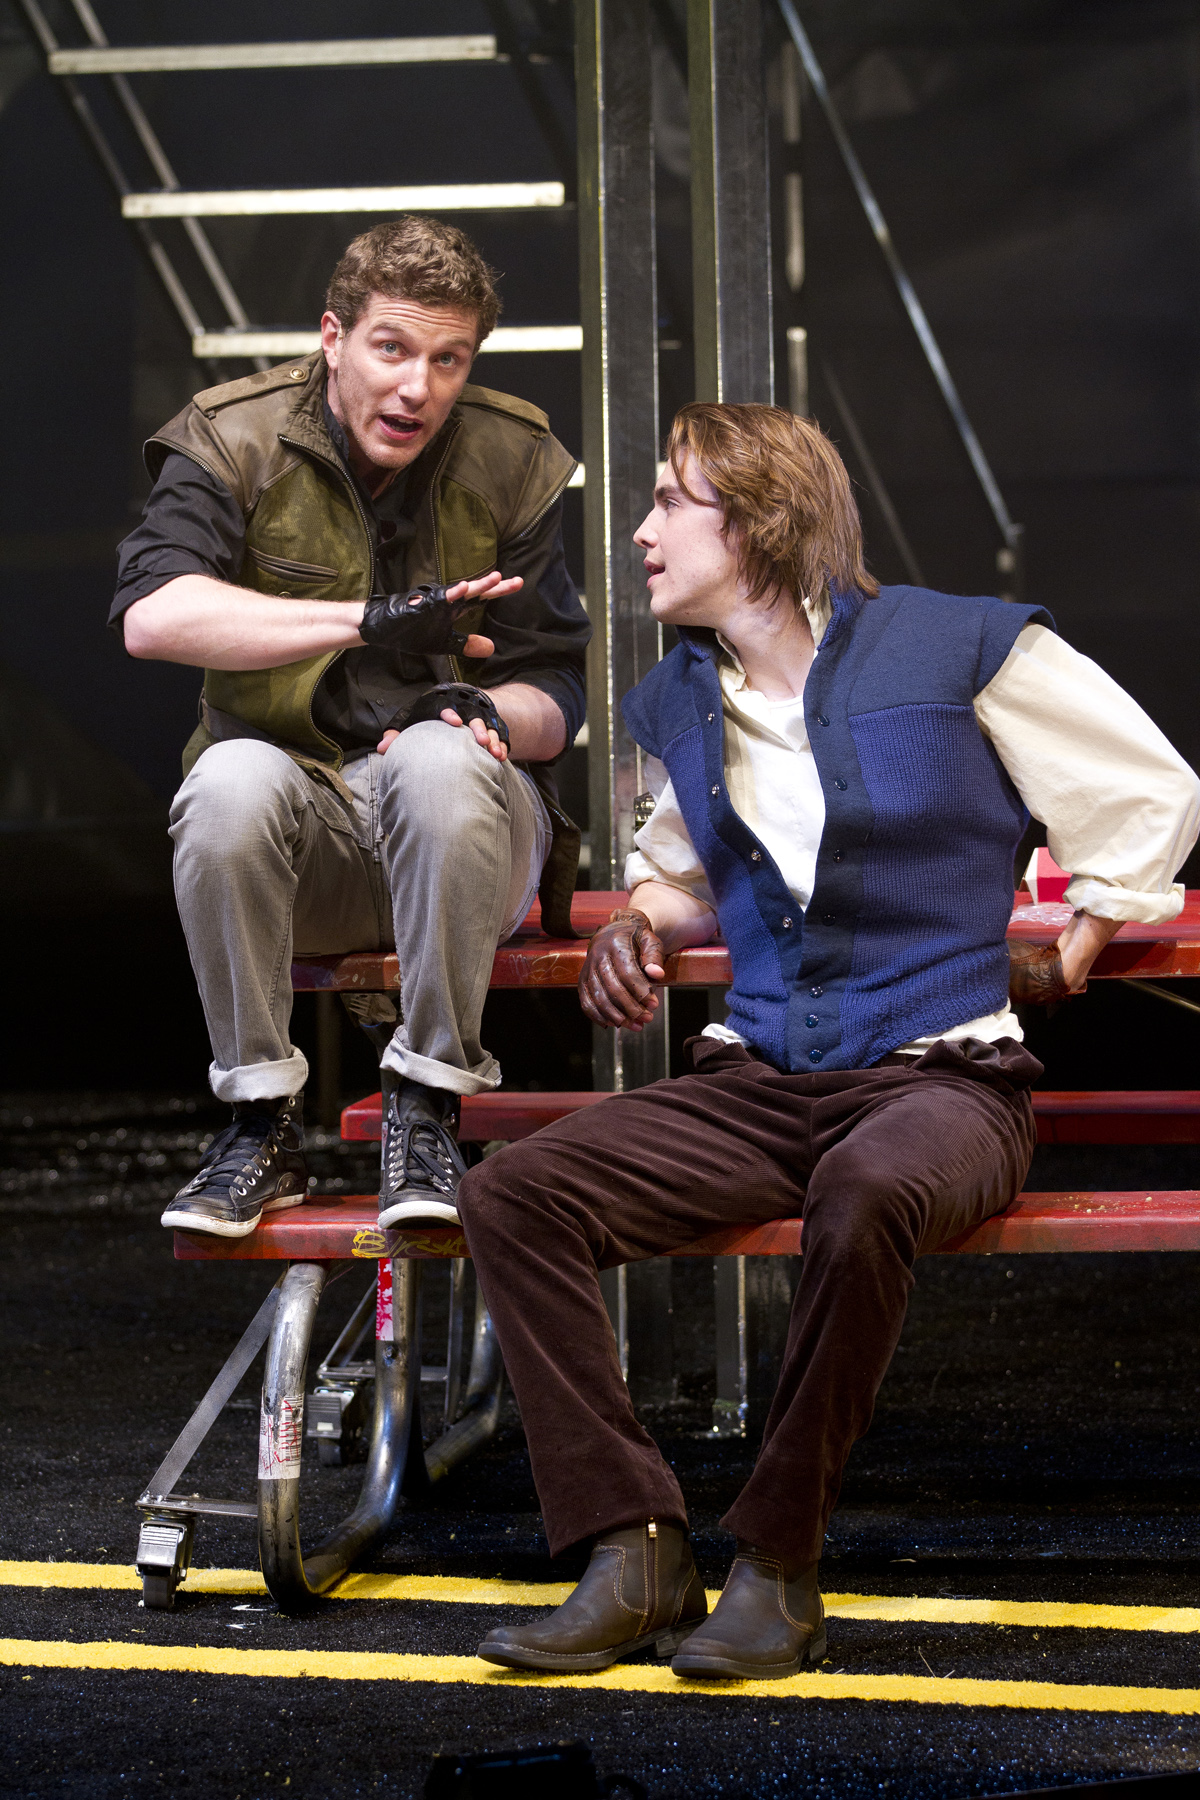 Nick Dillenburg as Proteus and Andrew Veenstra as Valentine in the Shakespeare Theatre Company's production of The Two Gentlemen of Verona, directed by PJ Paparelli. Photo by Scott Suchman.